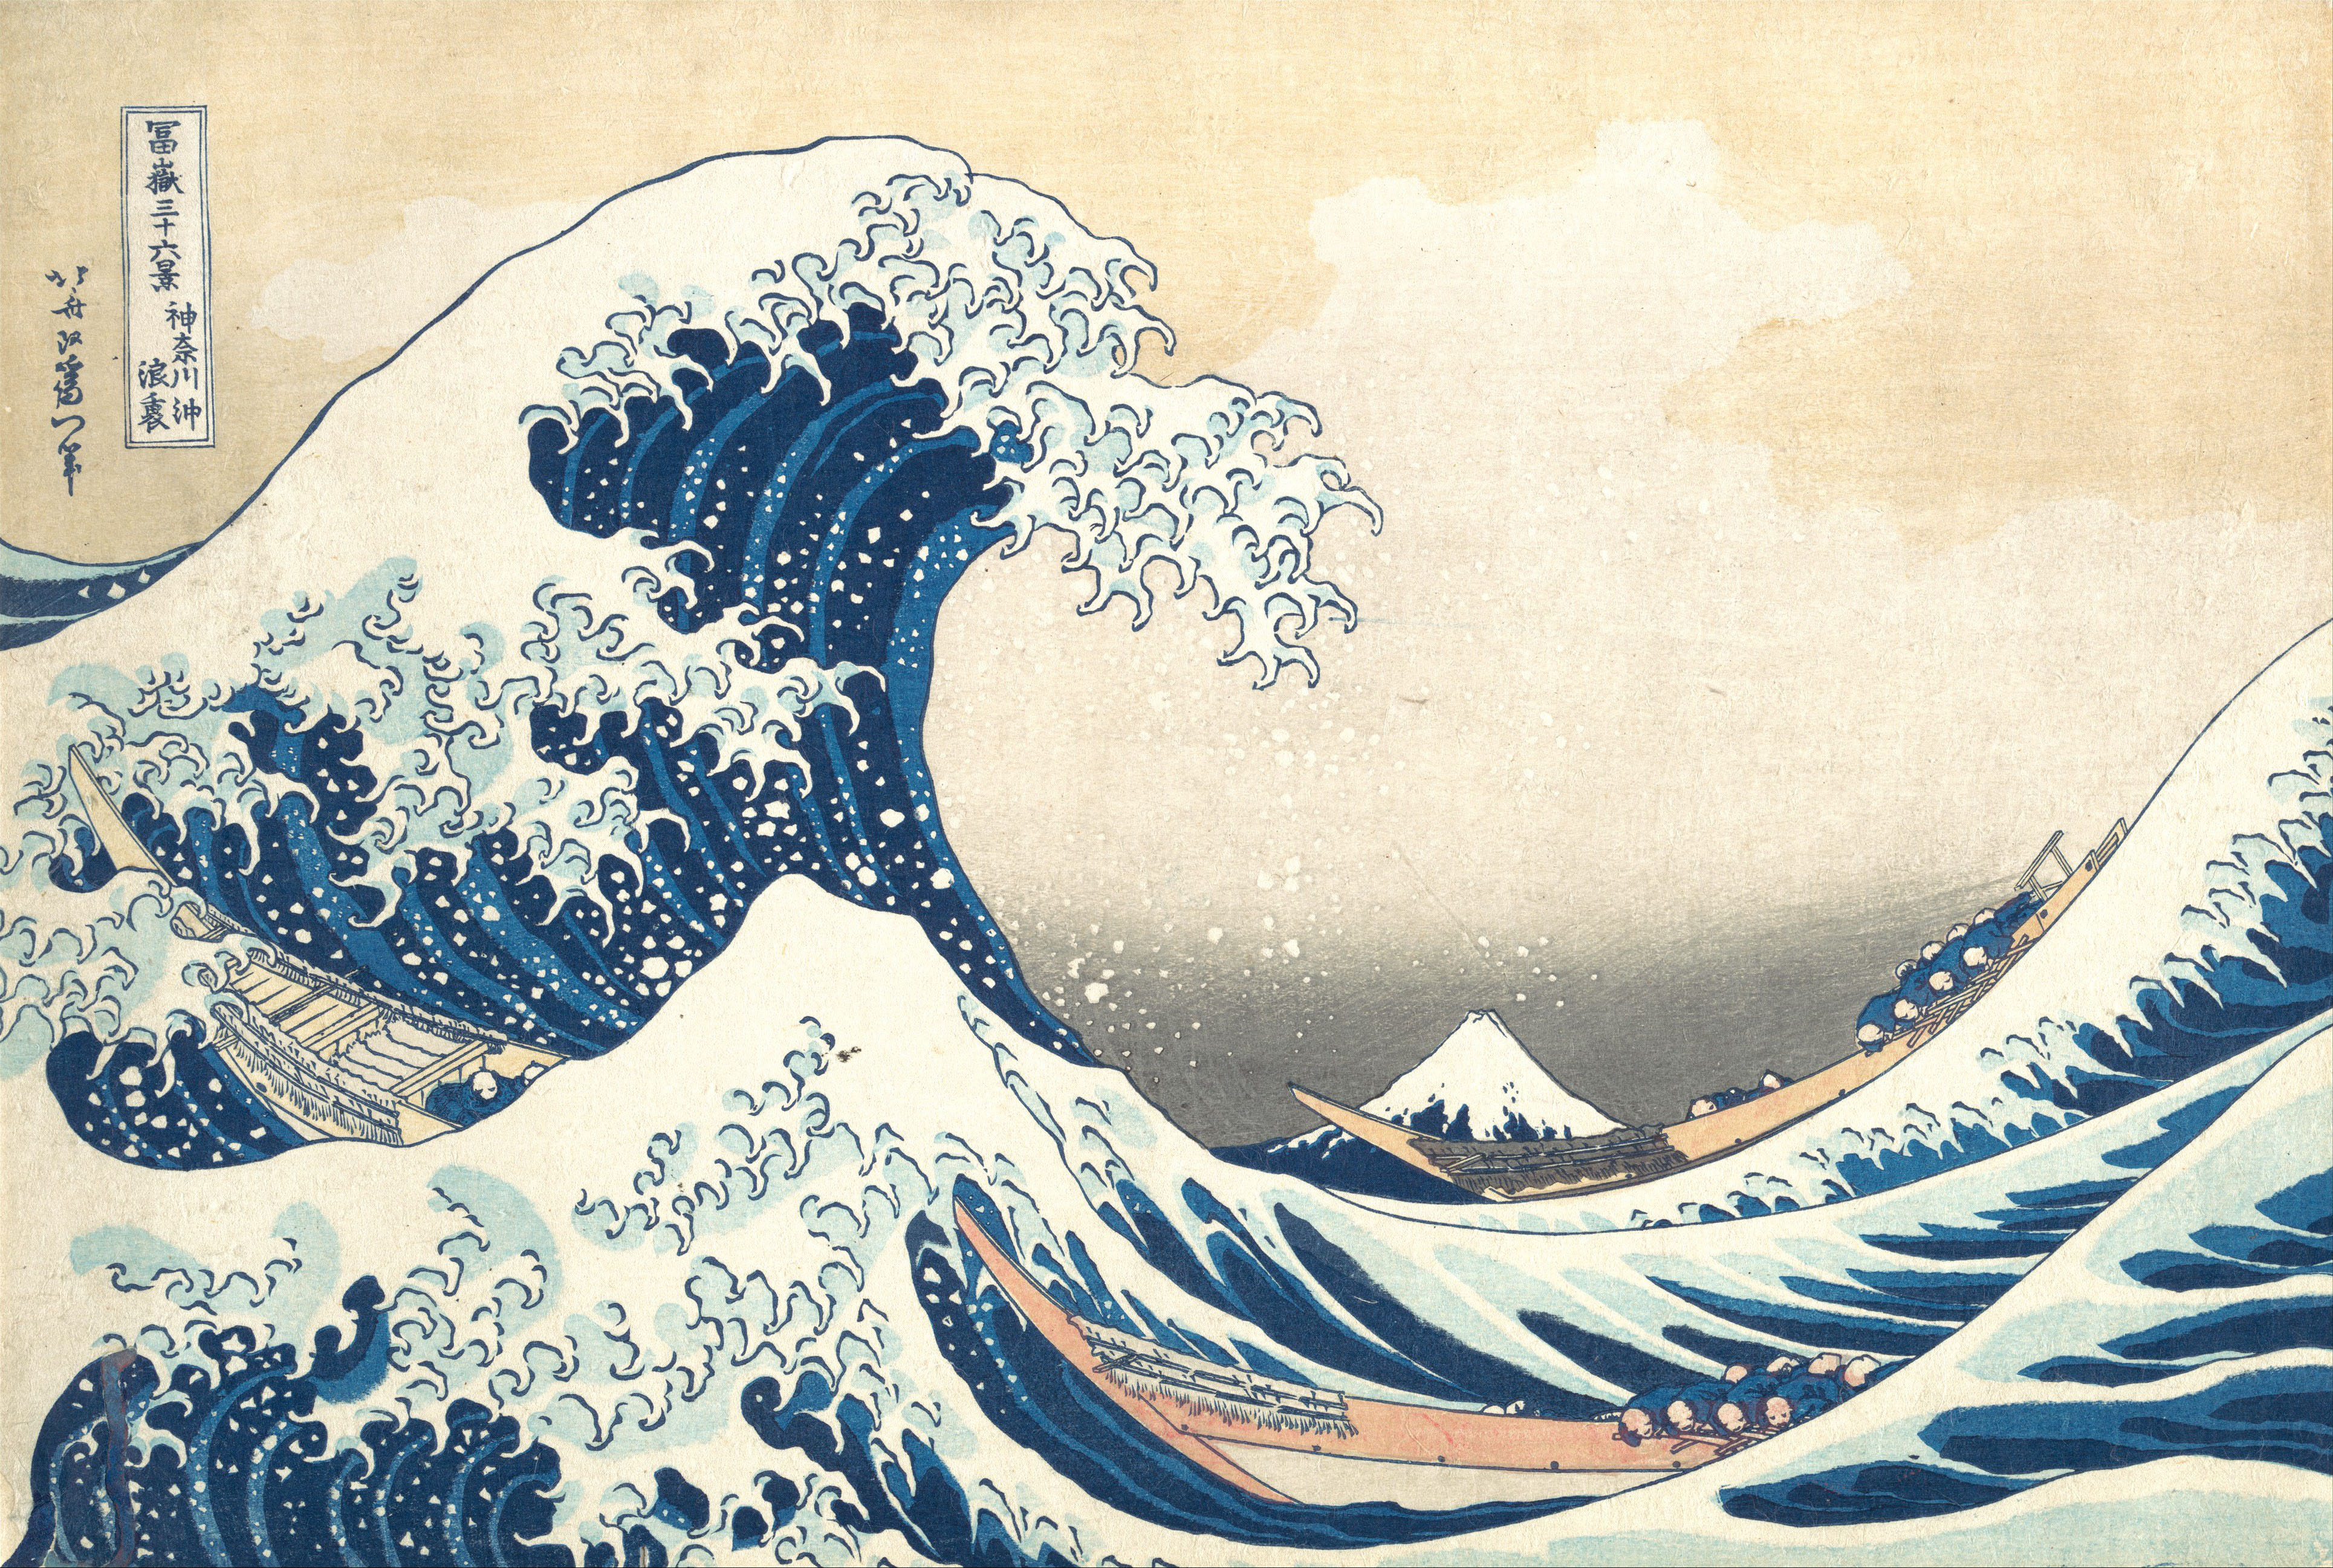 The great wave off kanagawa clipart